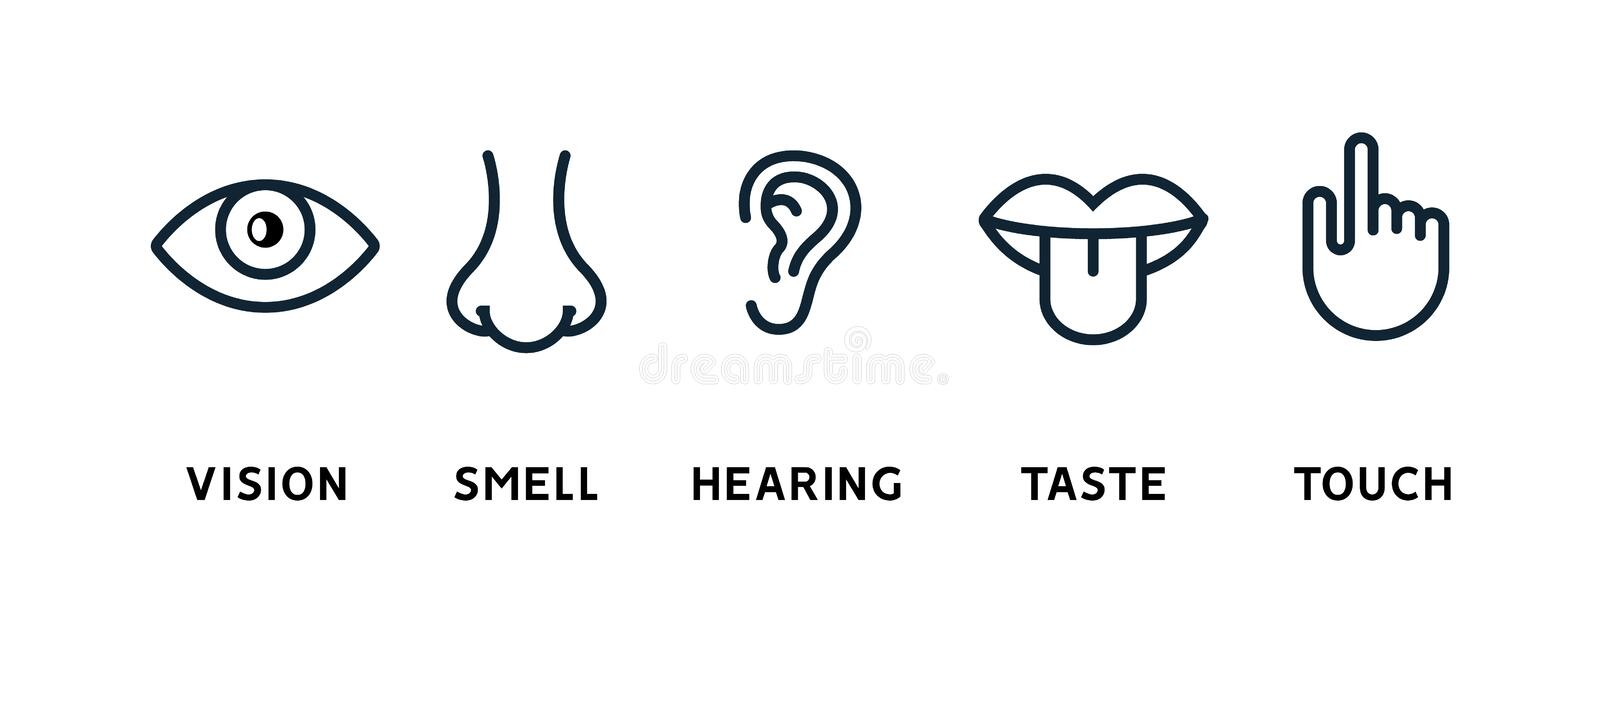 Five human senses vision eye, smell nose, hearing ear, touch hand, taste mouth and tongue. Line vector icons set royalty free illustration